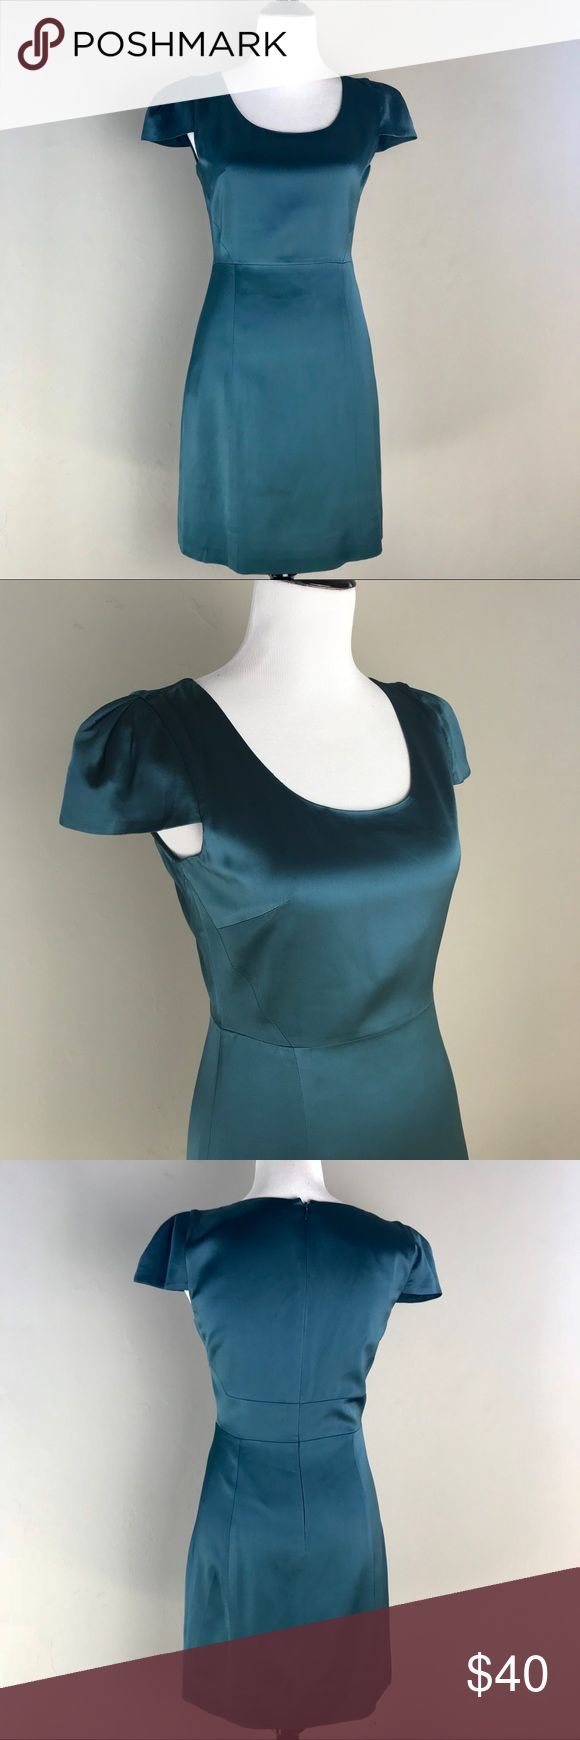 """•anthro• 4 collective Stretch Satin Dress EUC, hardly worn. 4C from Anthropologie. Beautiful teal stretch satin. Rounded neck with cap sleeves. Size 6, measurements: Armpit to armpit: 17"""" Waist: 14.5"""" Length: 34.5""""  🚭smoke and pet free🏡 Anthropologie Dresses"""